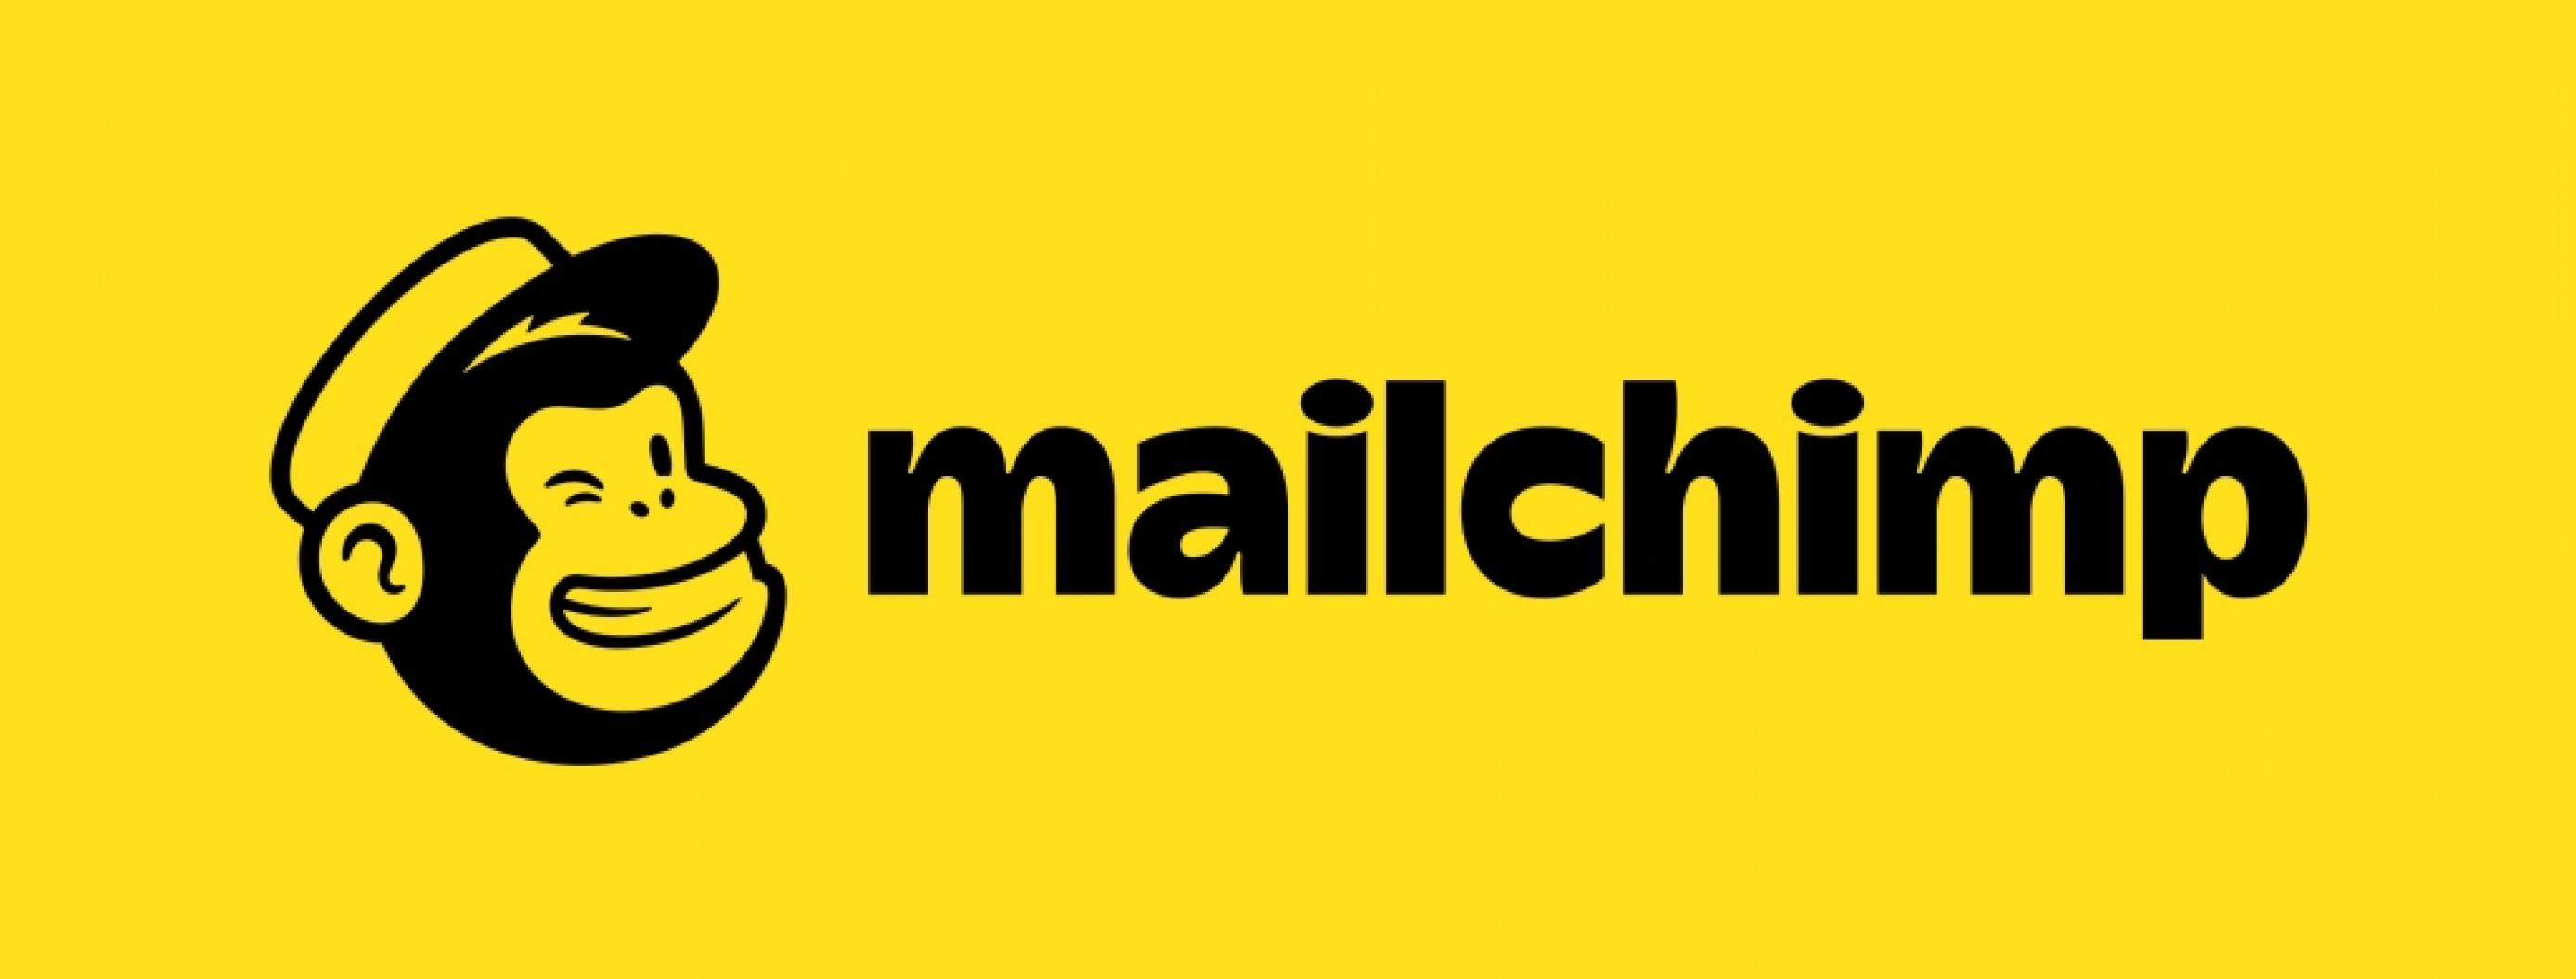 Mailchimp Goes from Newsletters to Full Marketing Platform